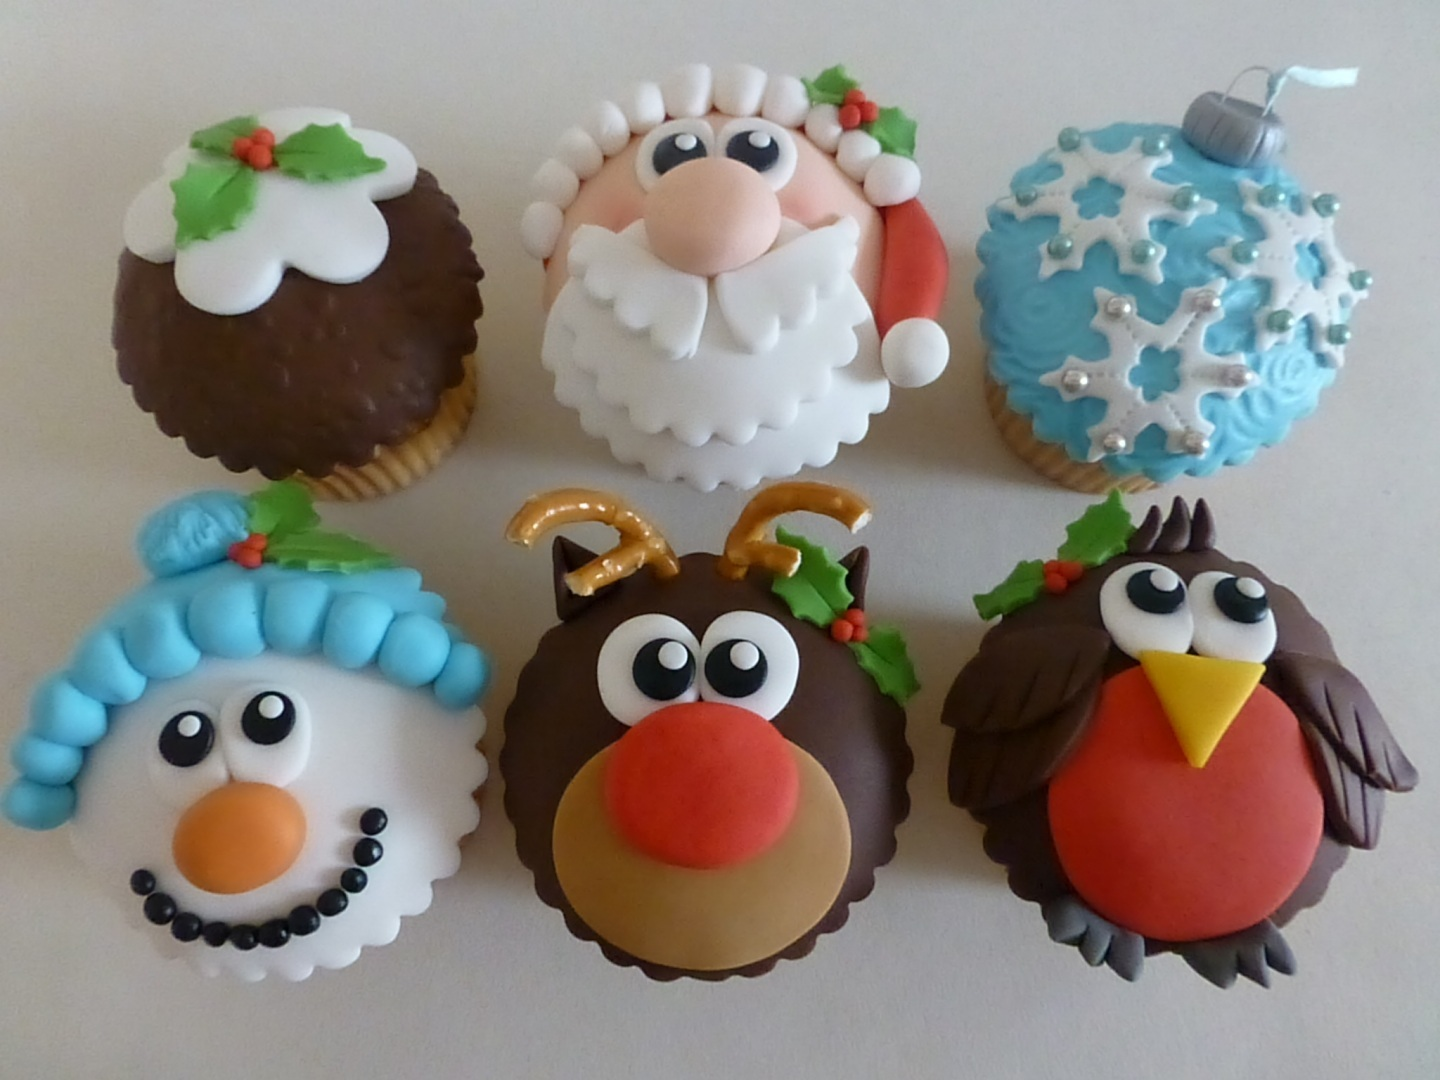 six cupcakes decorated with brown, white red pink and blue fondant icing, shaped like santa and reindeer, snowman and bird, christmas pudding and ornament